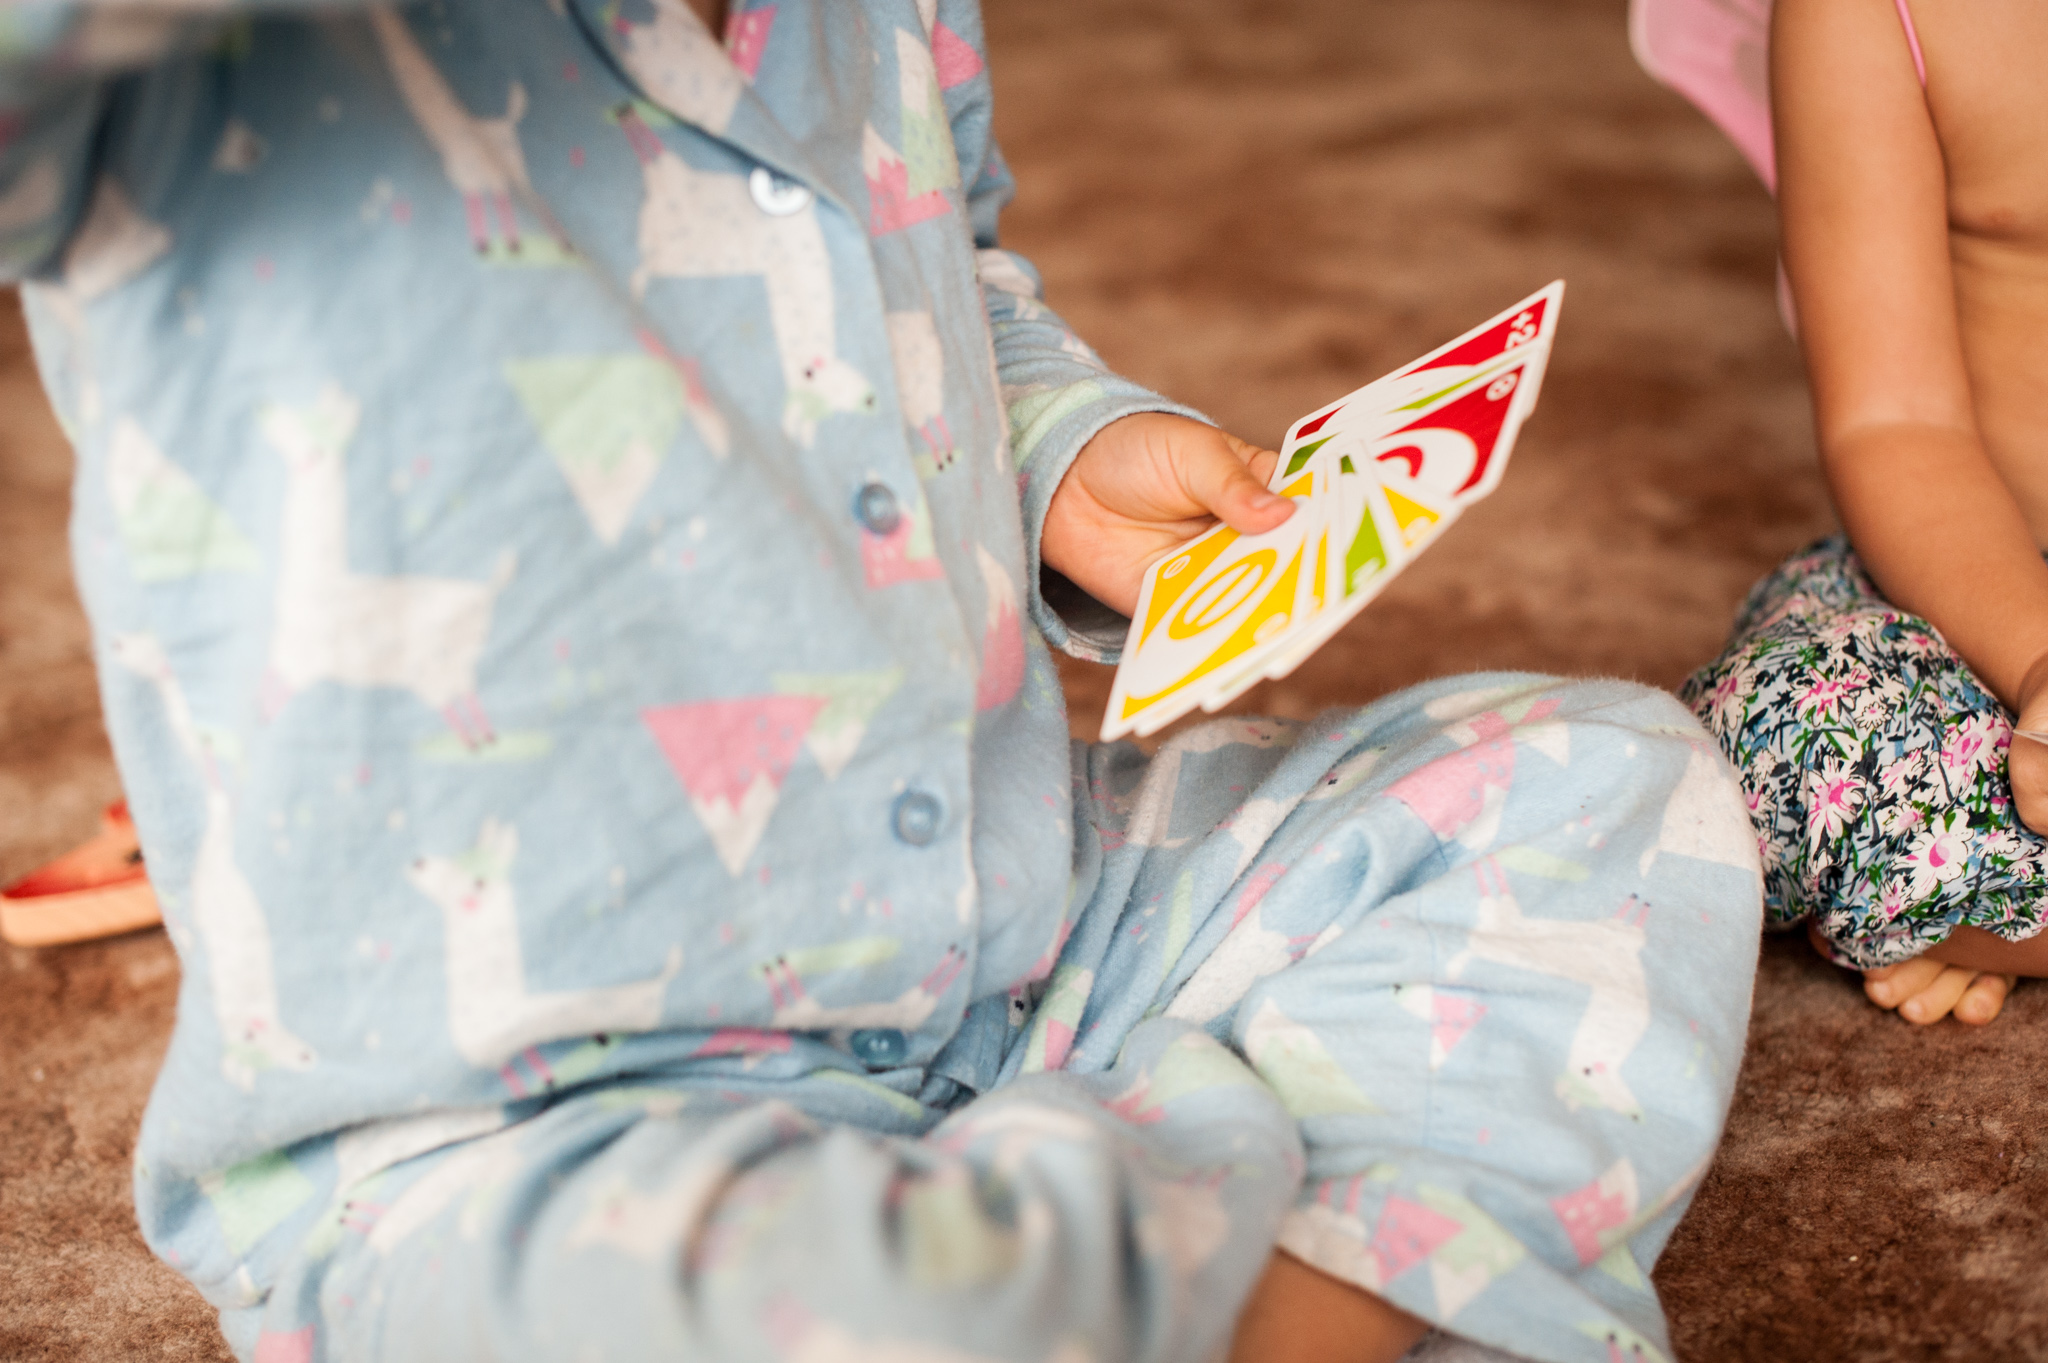 Playing UNO in pajamas